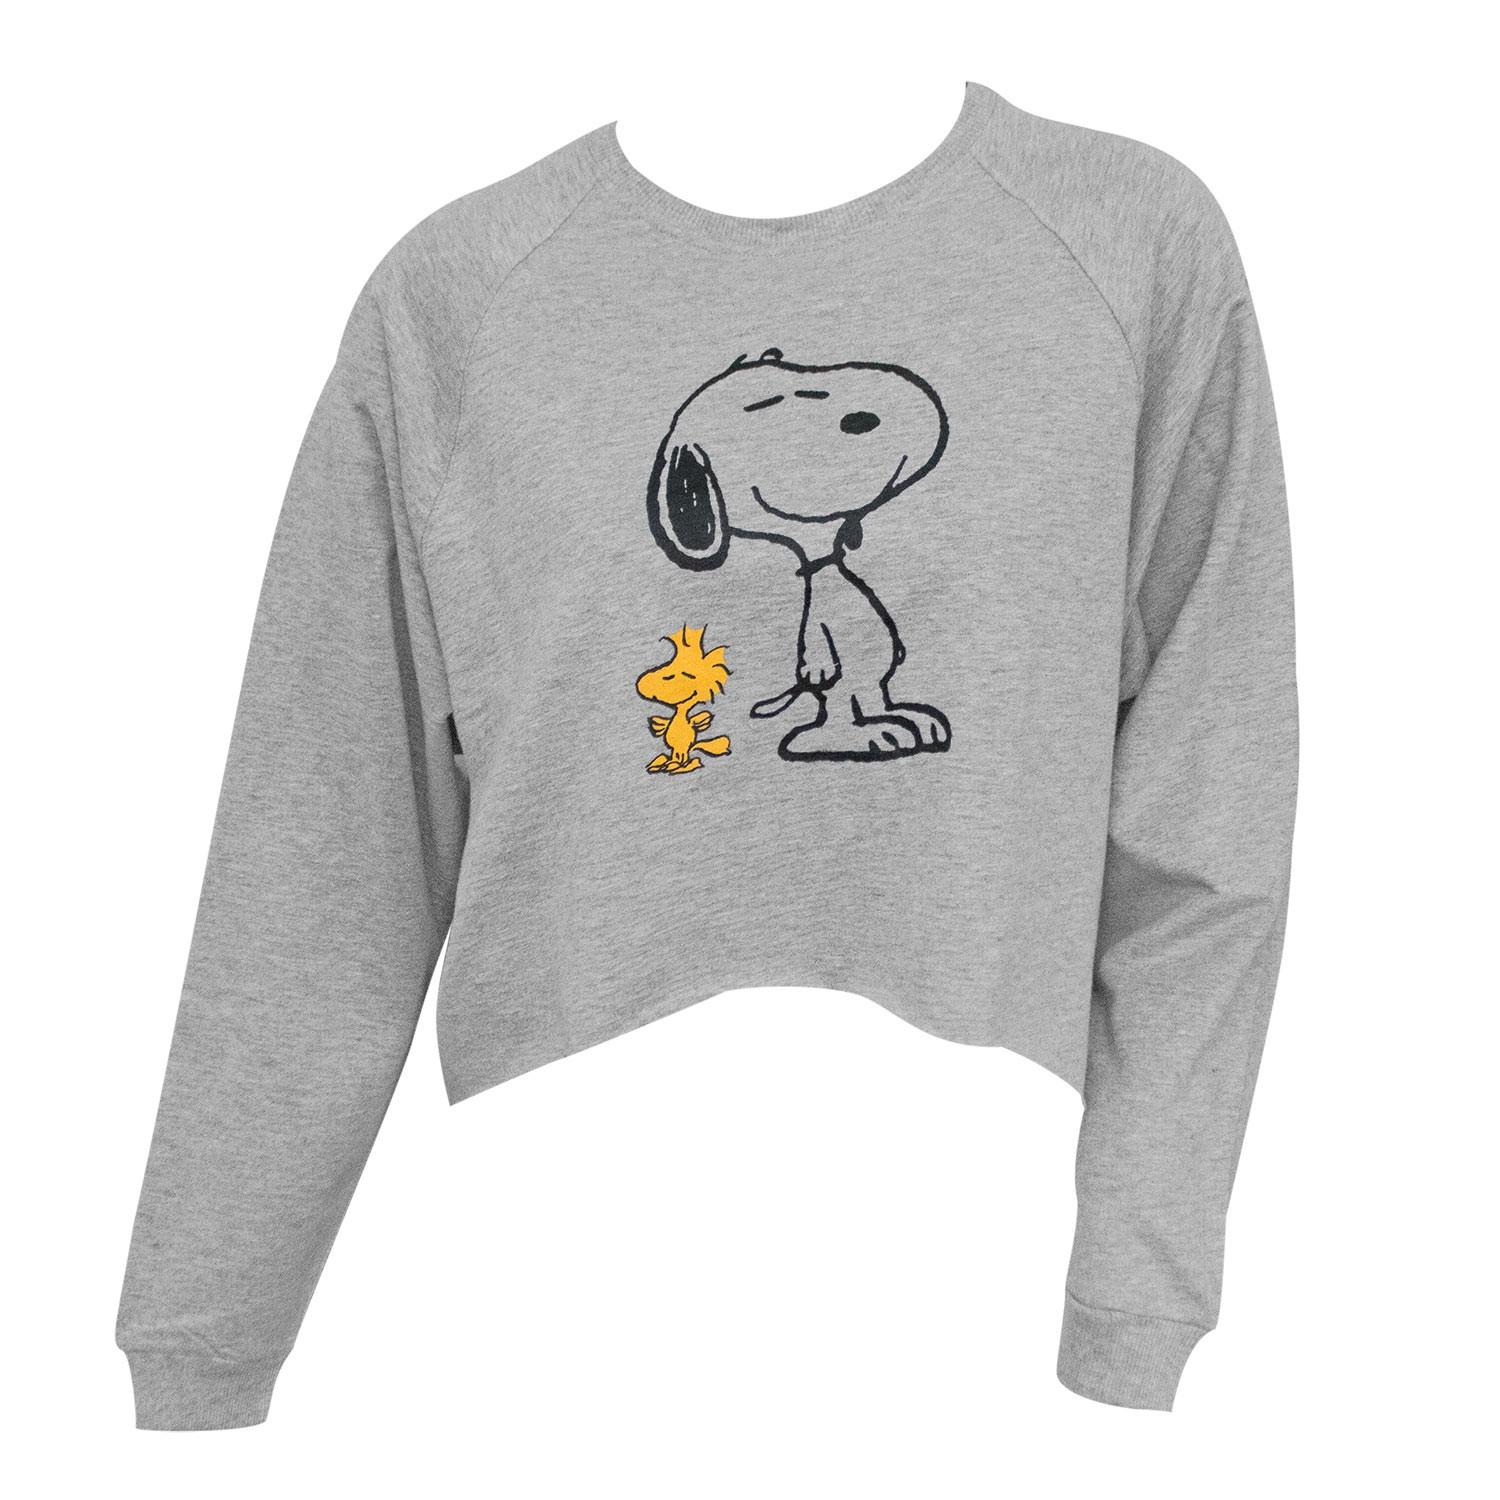 Peanuts Snoopy And Woodstock Women's High-Low Cropped Grey Sweatshirt